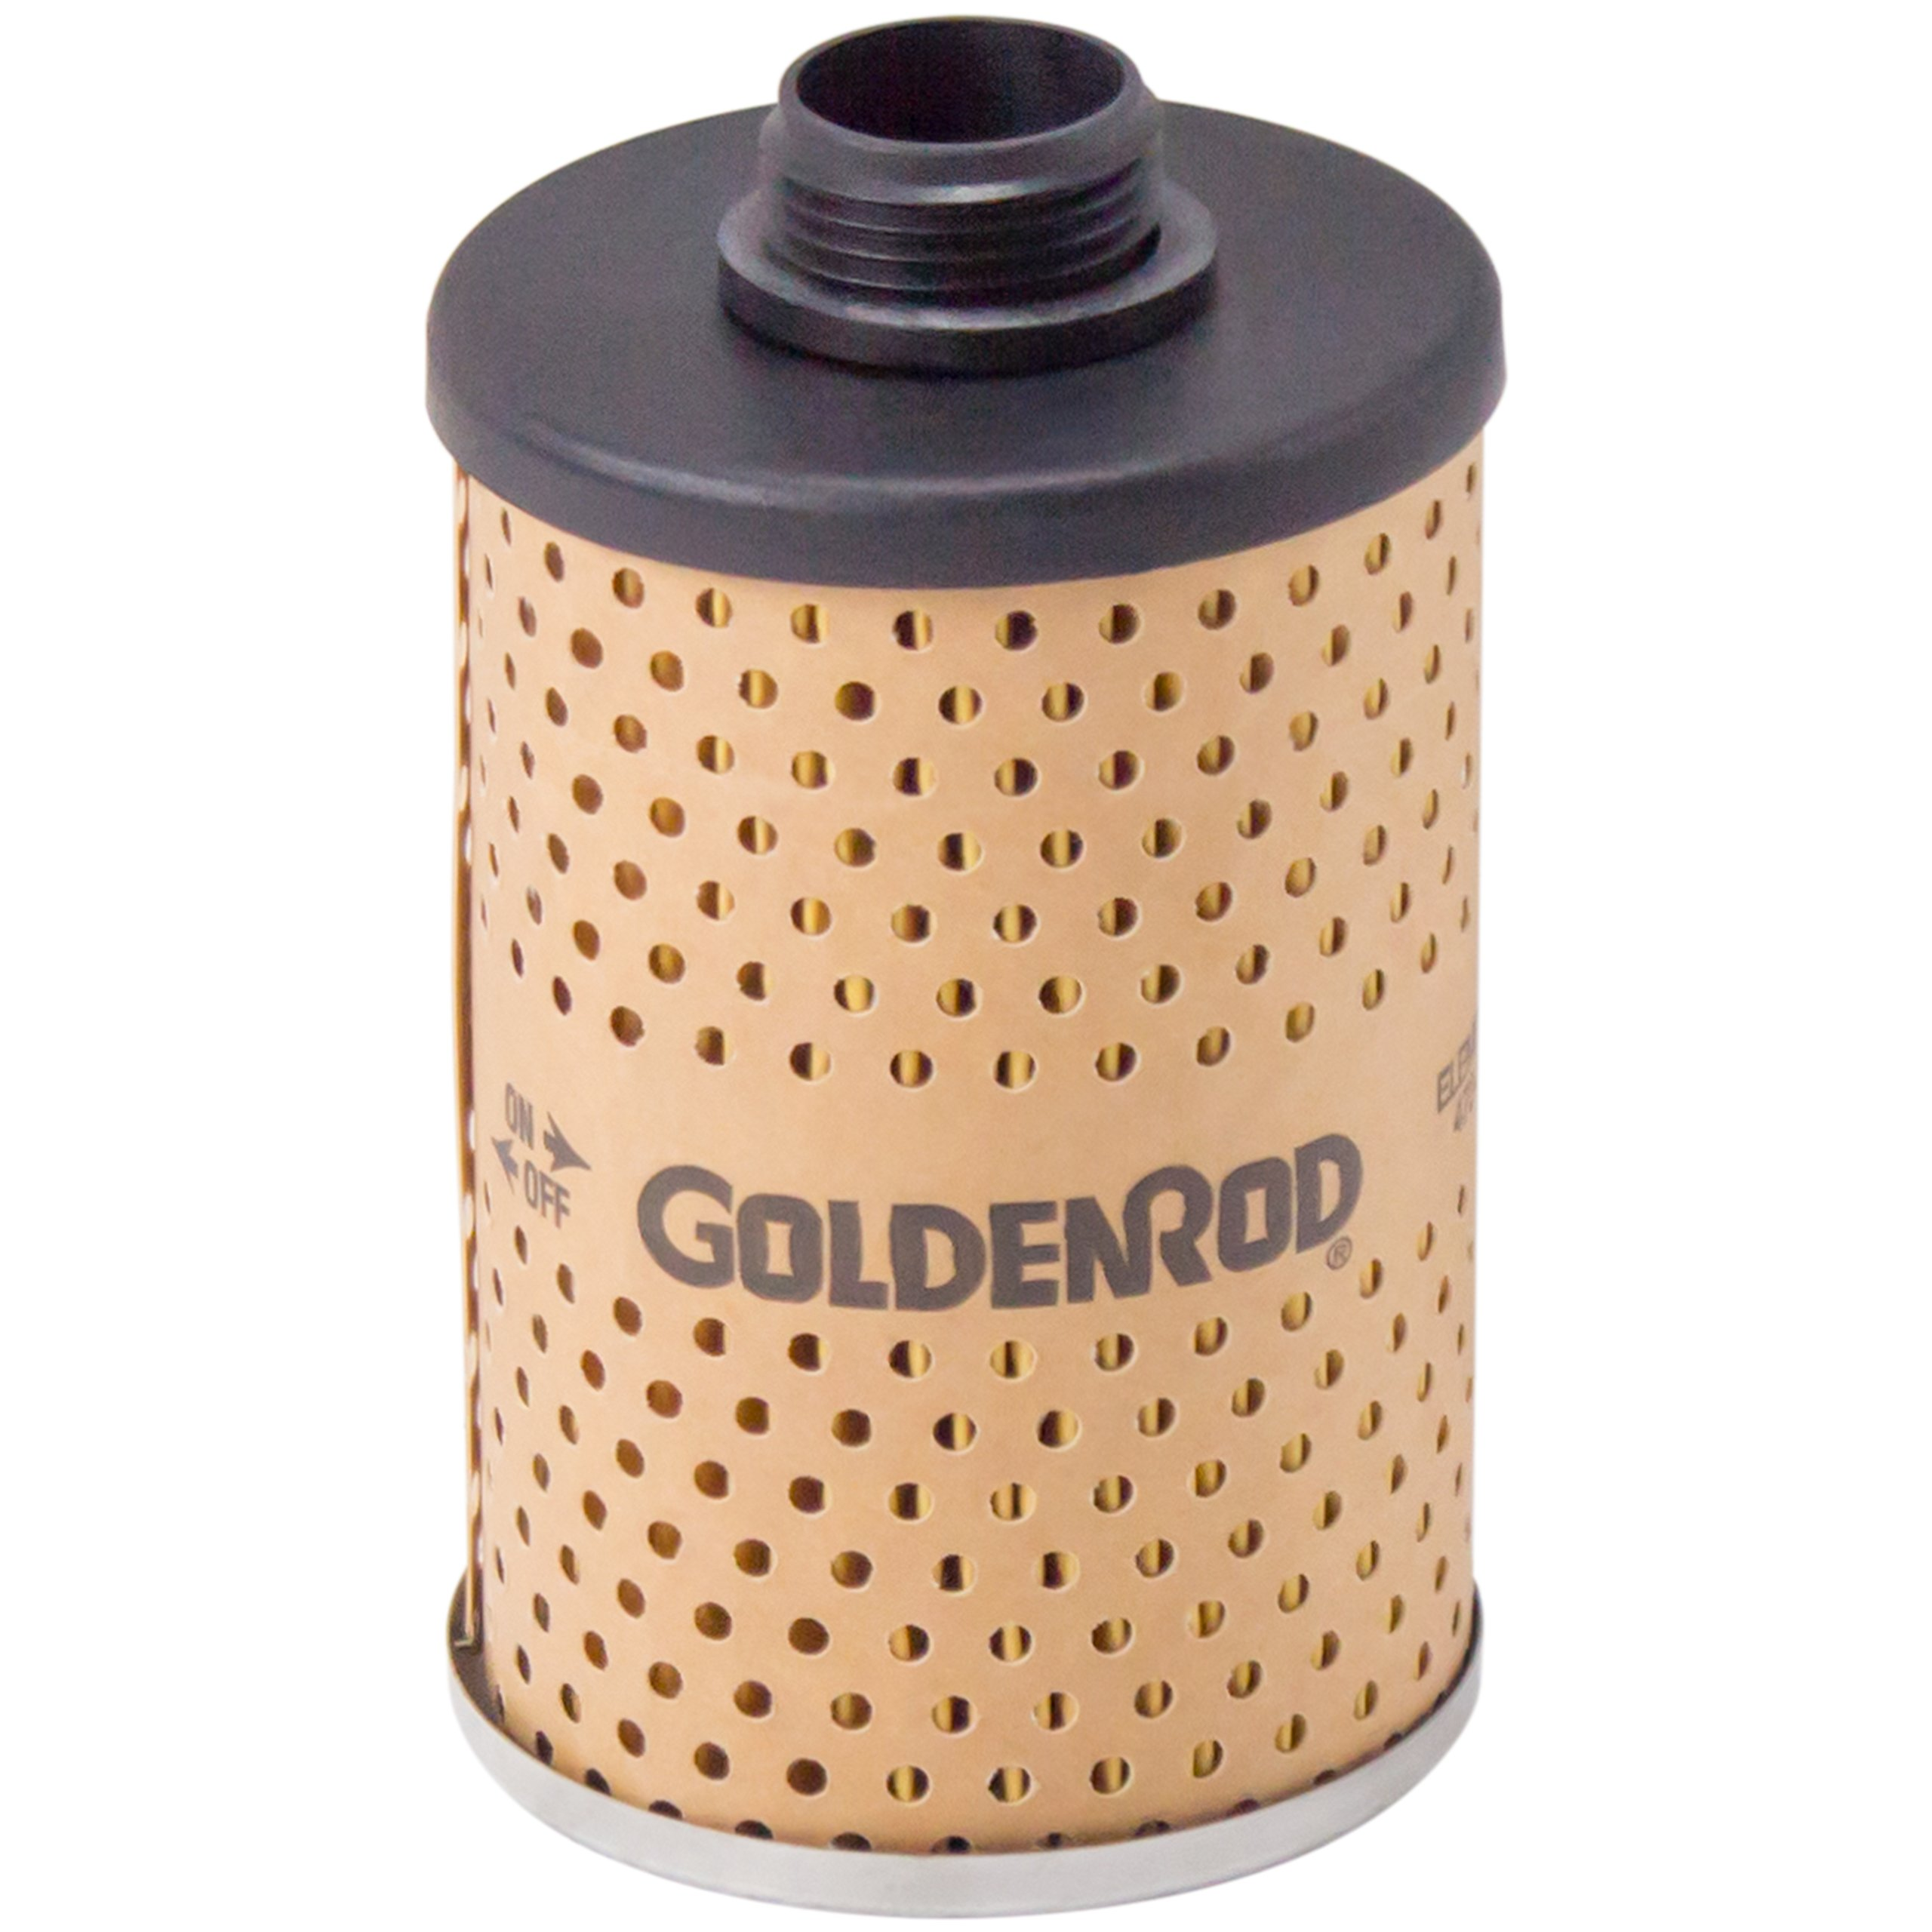 Goldenrod Replacement Fuel Filter Element - Fits Item# 1703(470-5) by Goldenrod